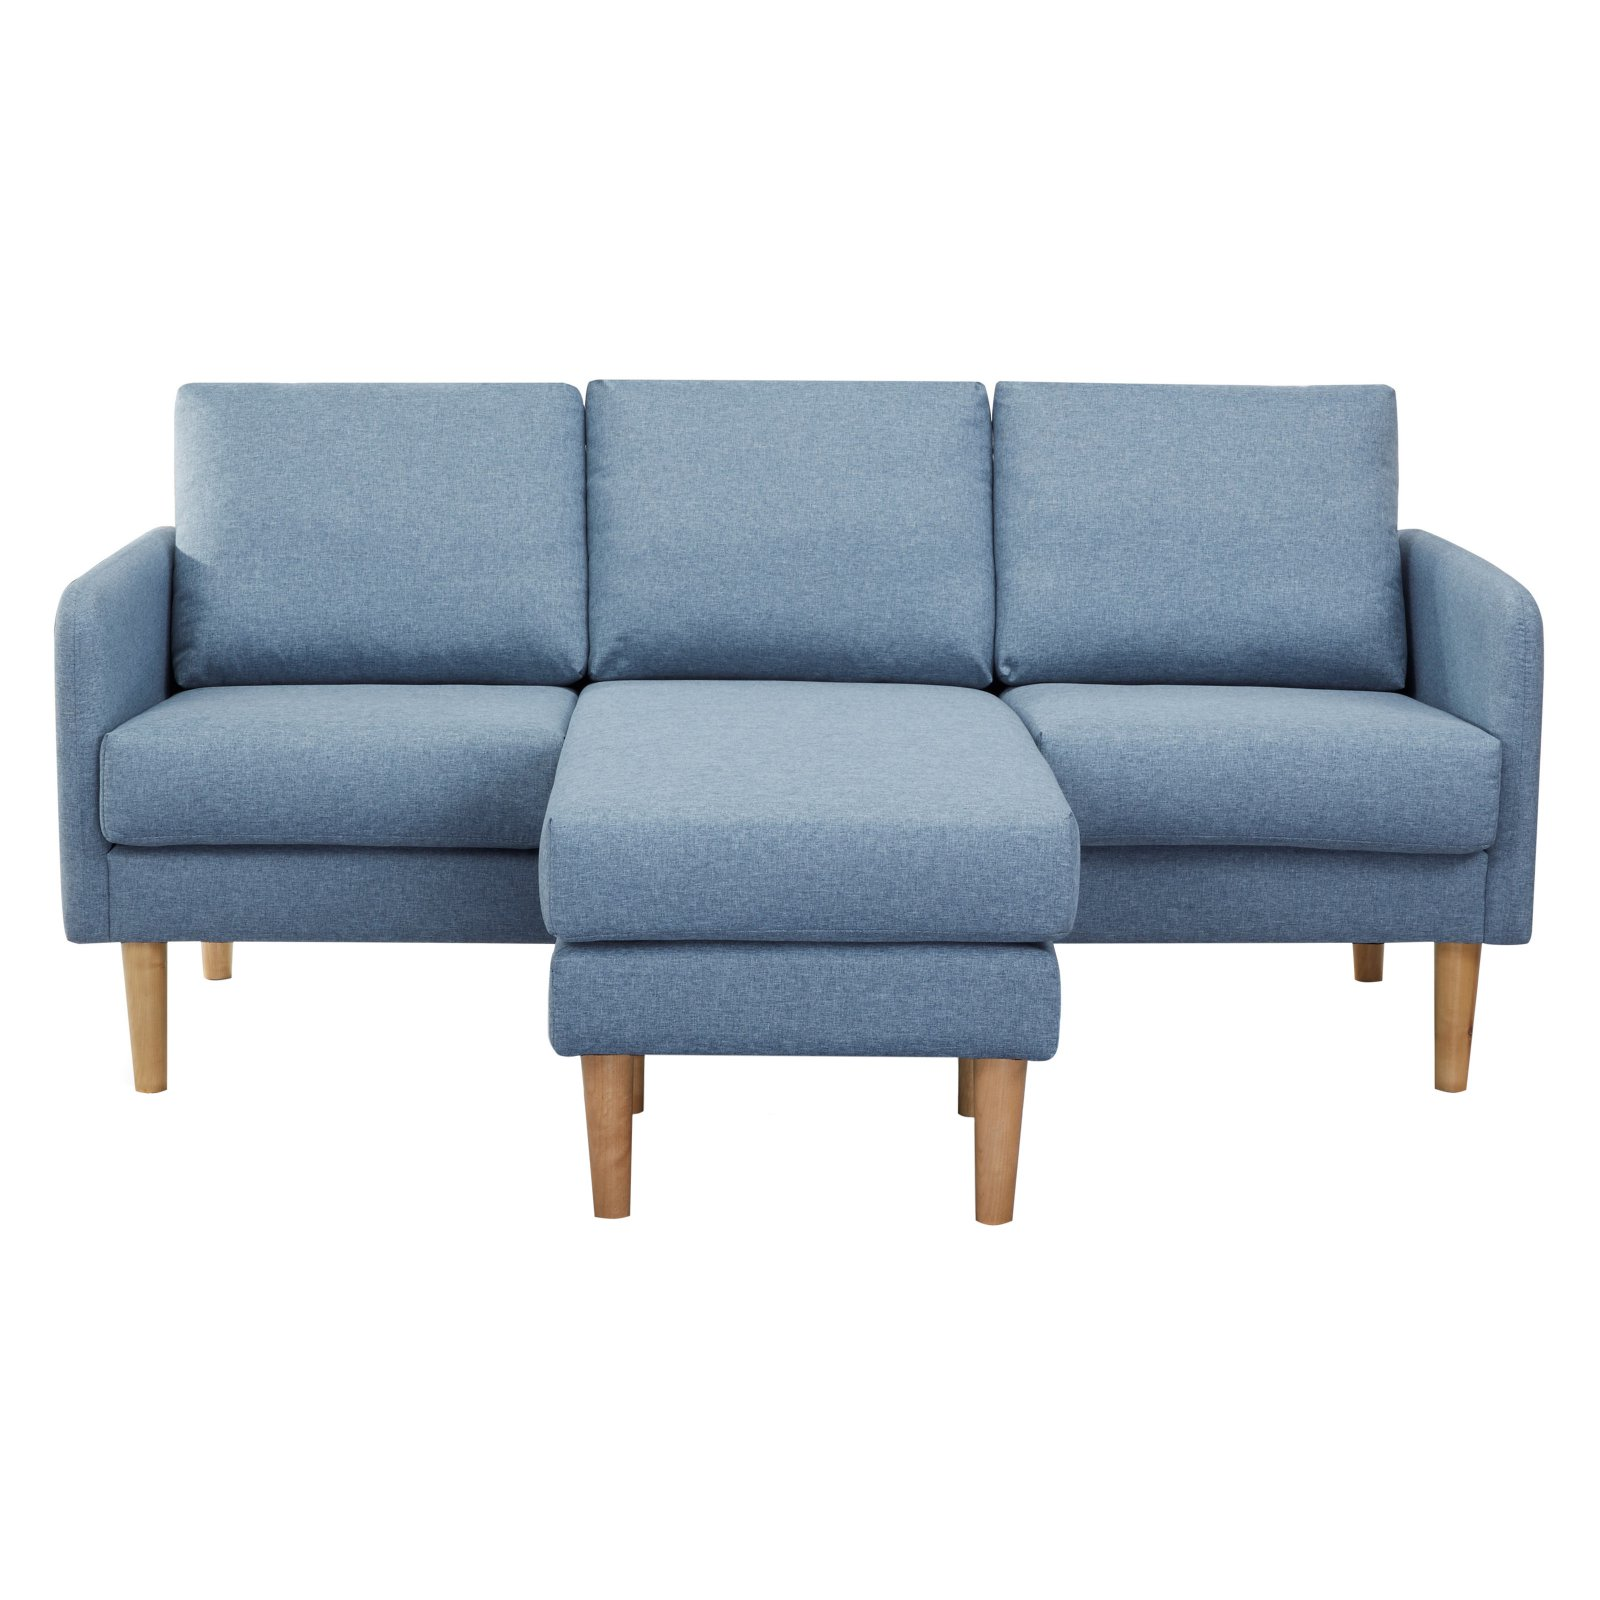 Fabulous Gold Sparrow Fernley Chambray Reversible Sectional Sofa Bralicious Painted Fabric Chair Ideas Braliciousco